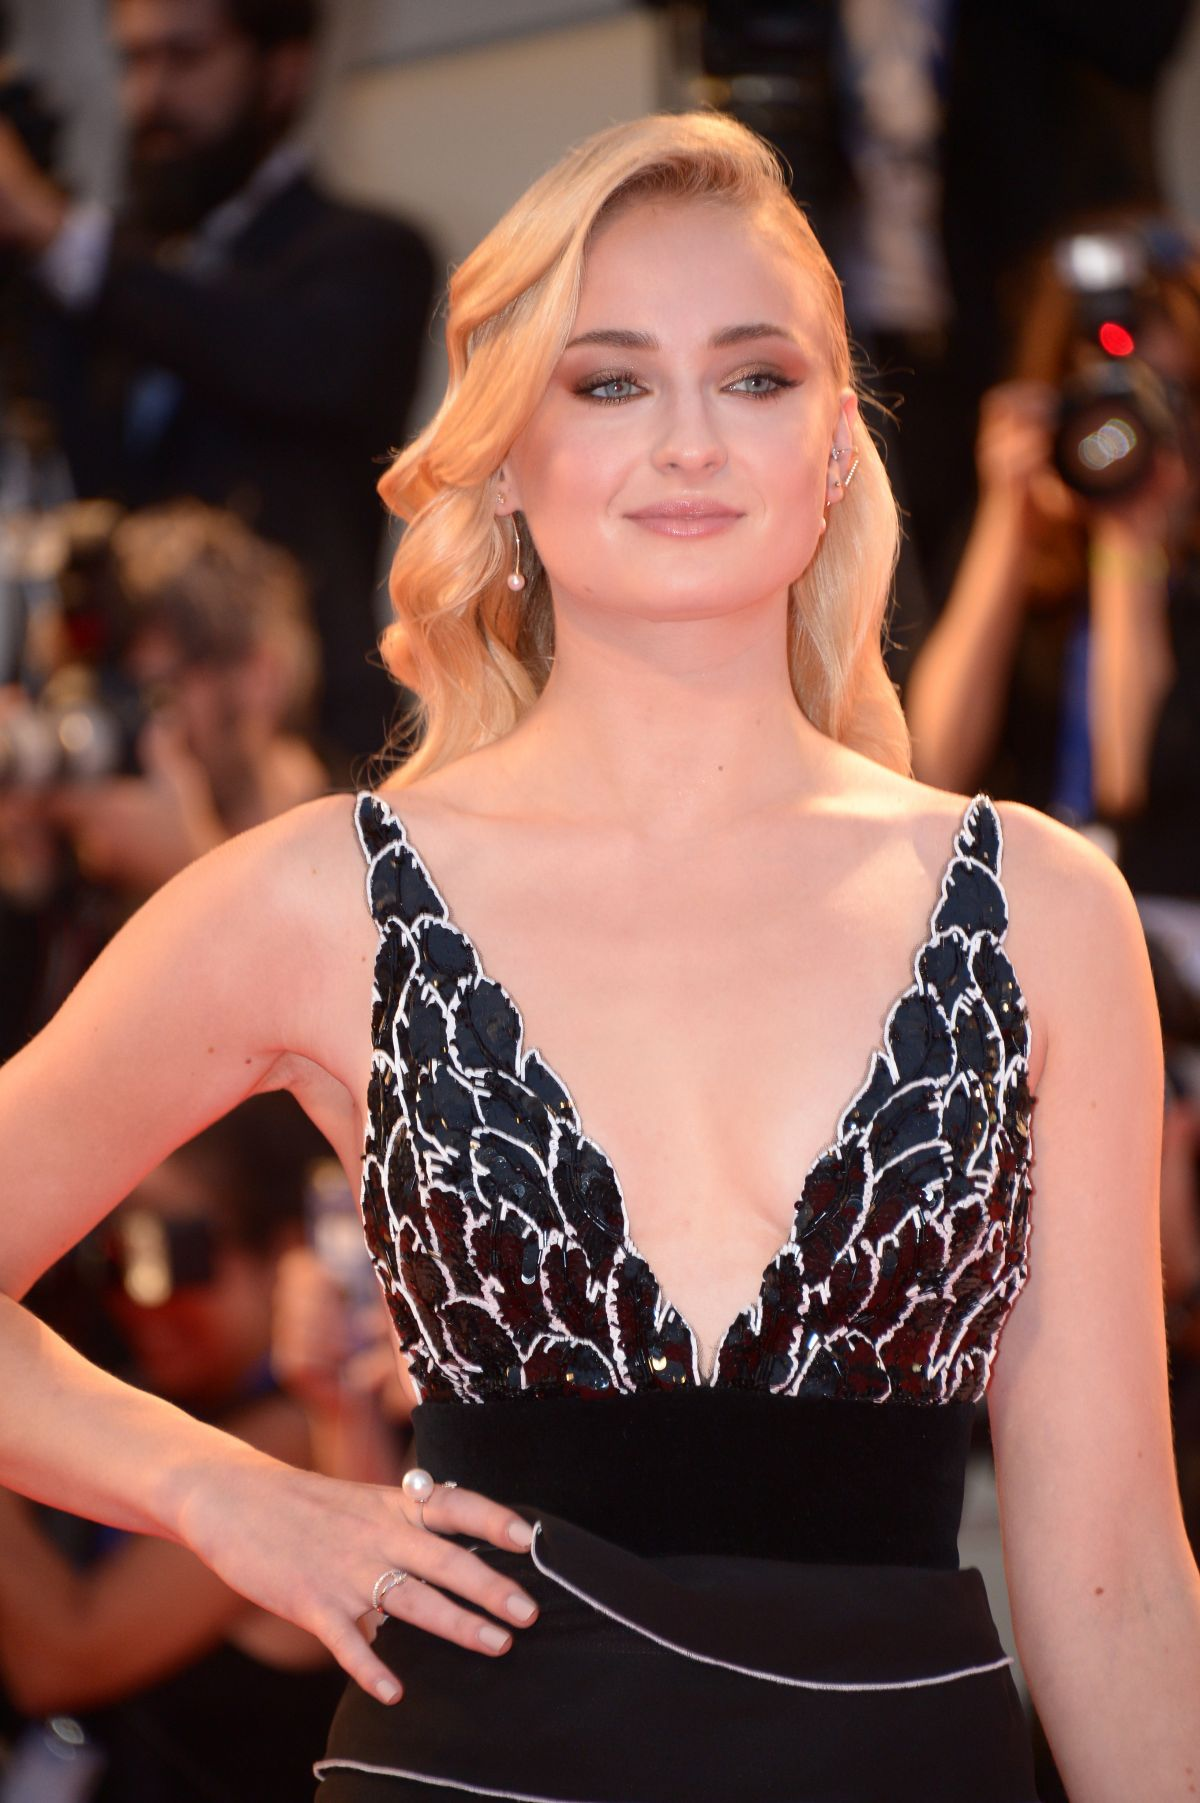 SOPHIE TURNER at Kineo Diamanti Award Ceremony at 2016 Venice Film Festival 09/04/2016